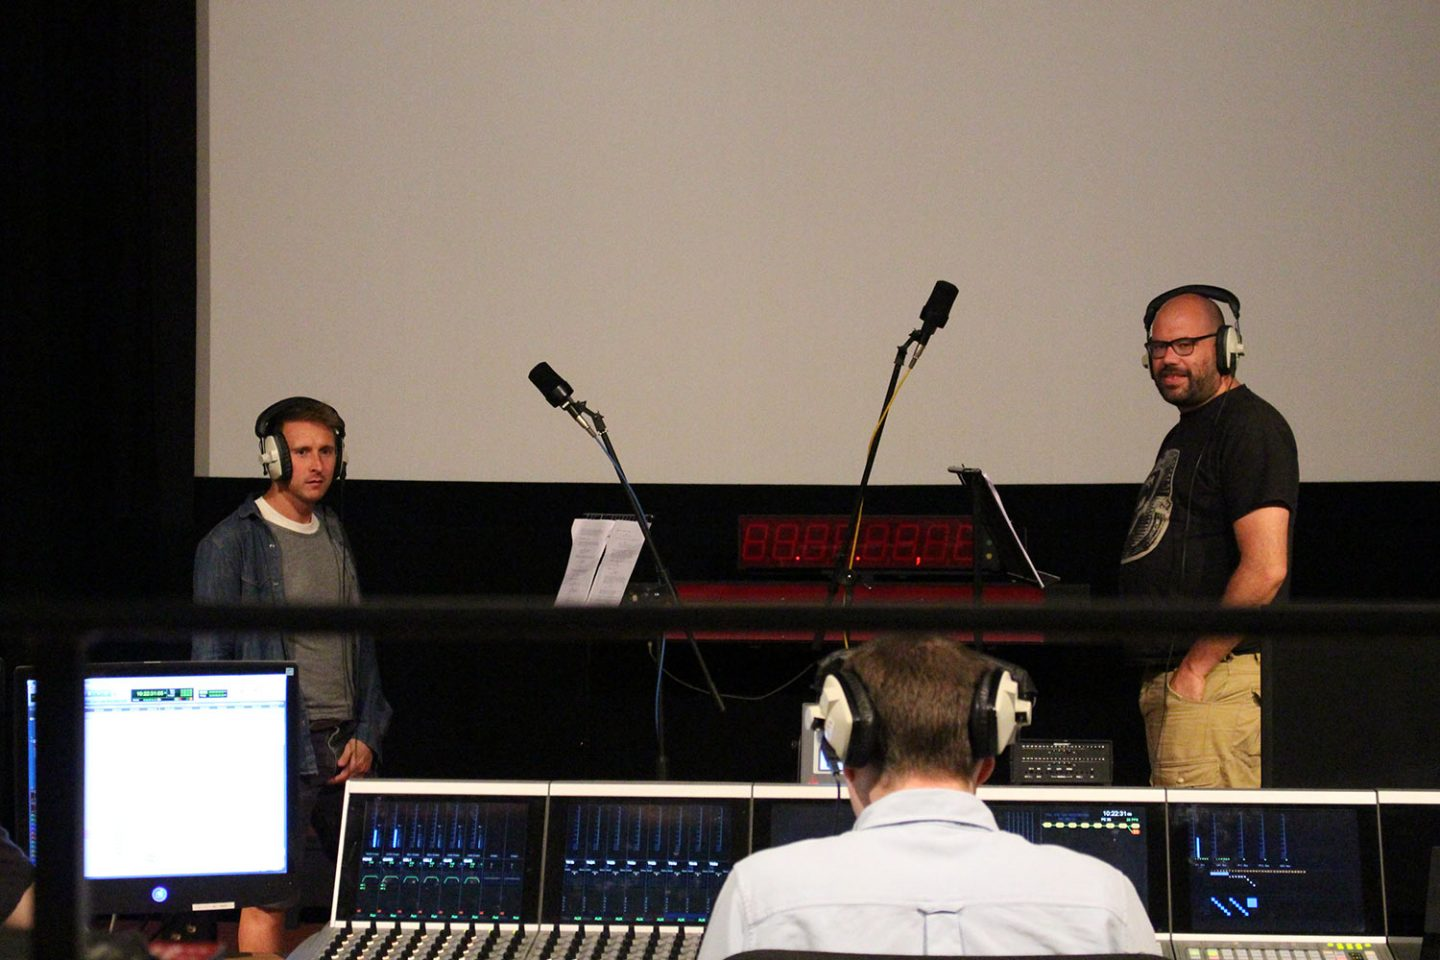 Voice actors Peter Caulfield (left) and Tom Davis during a recording session.